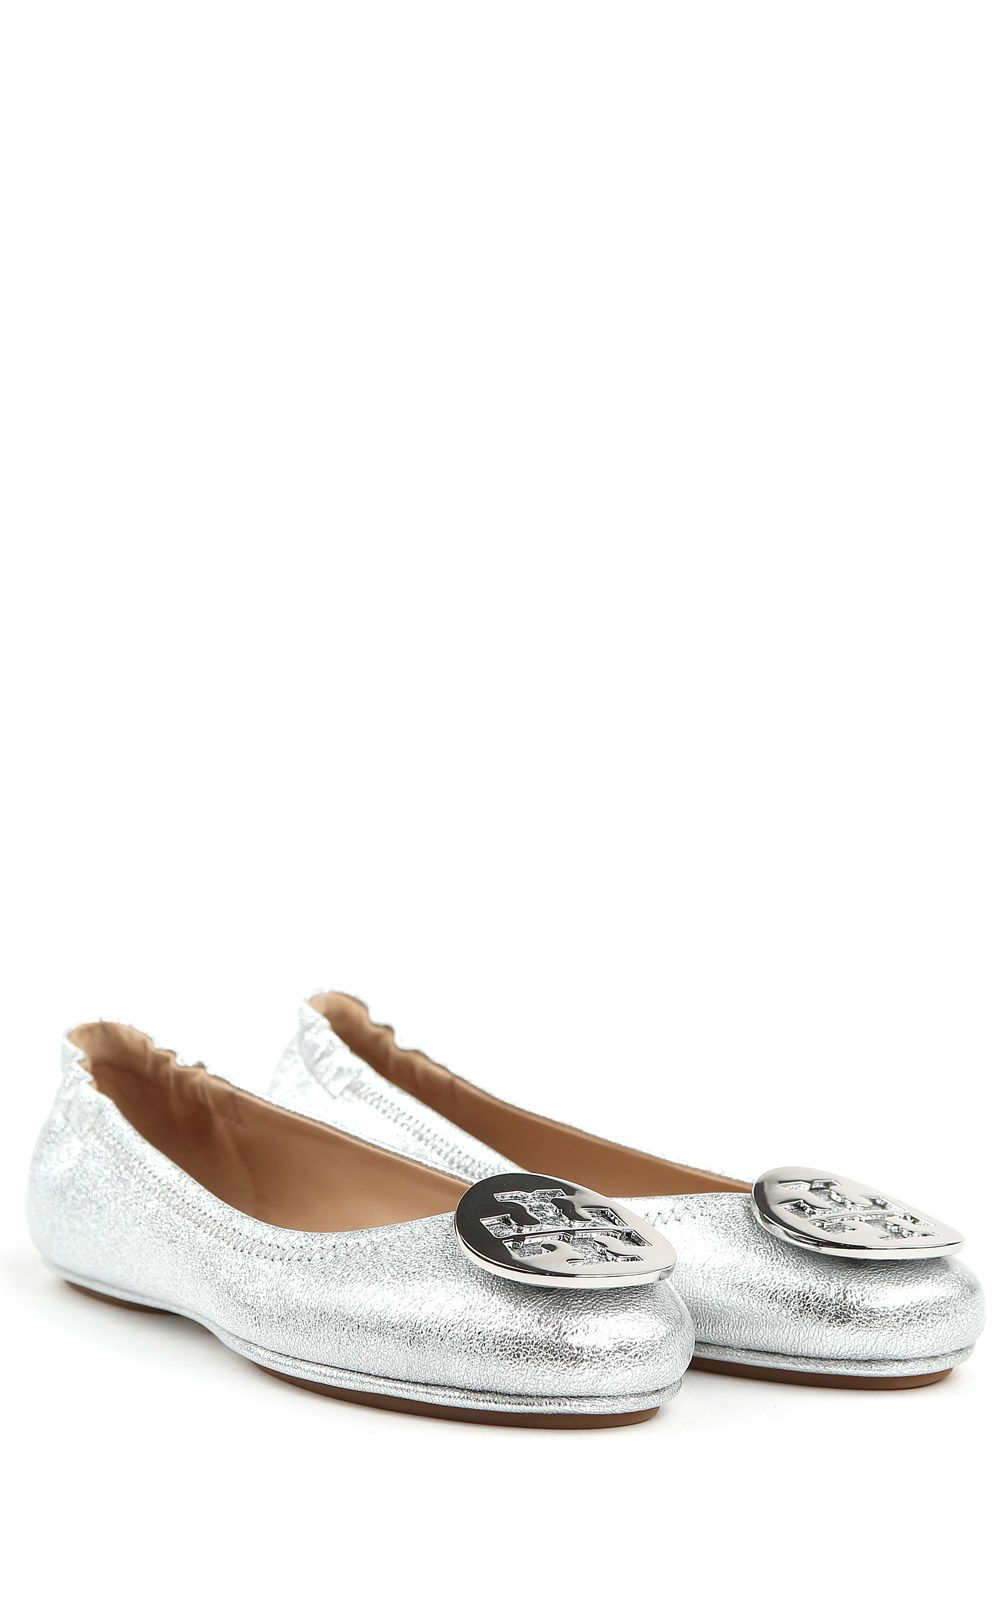 tory burch tory burch minnie travel metallic leather ballet flats silver women 39 s flat shoes. Black Bedroom Furniture Sets. Home Design Ideas